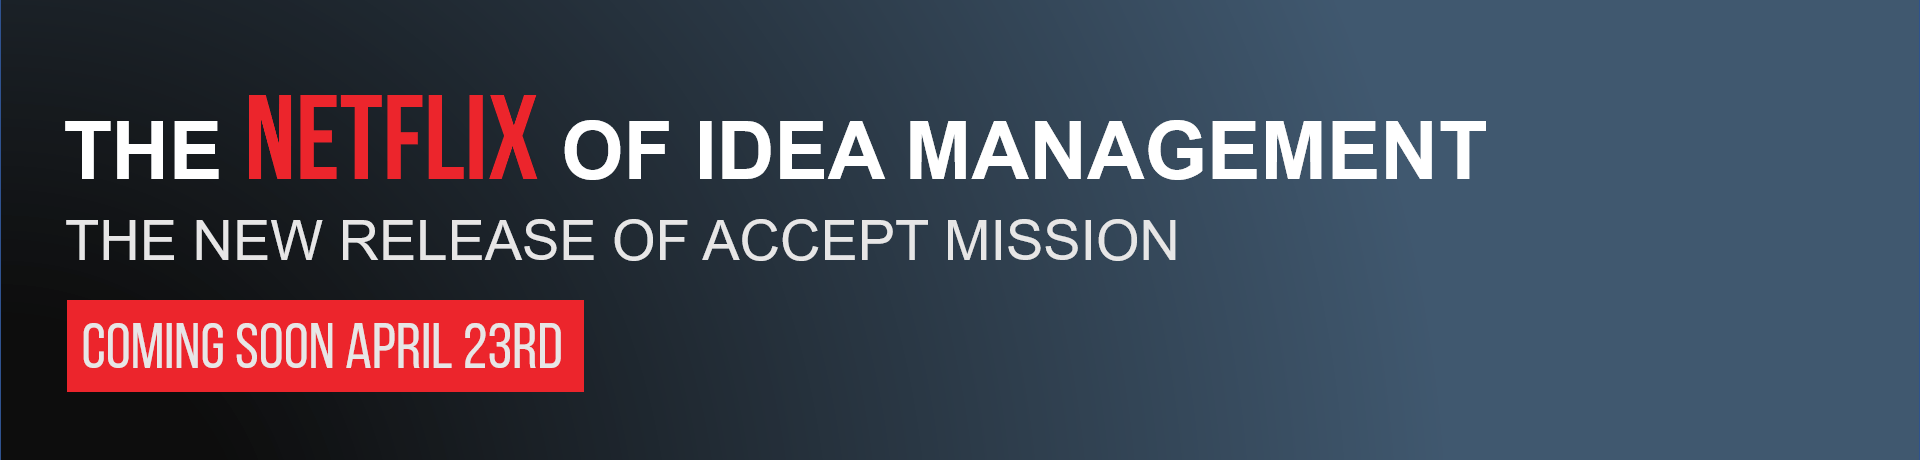 The Netflix of Idea Management